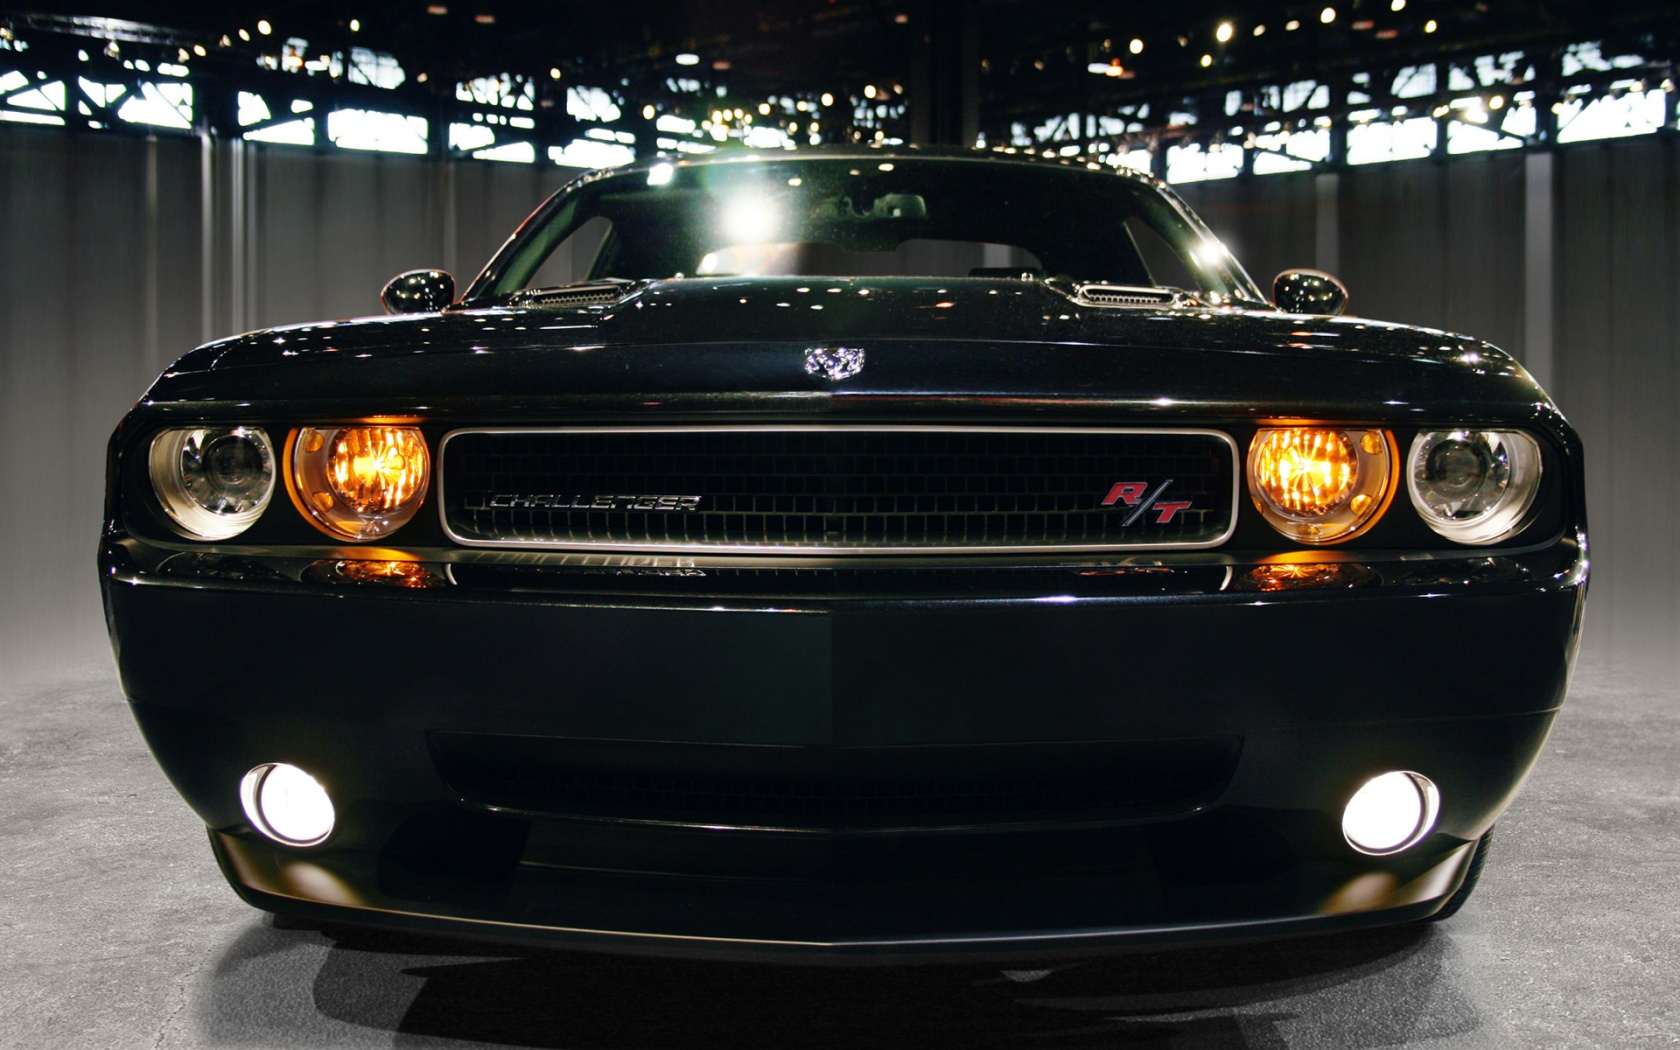 Challenger High Quality Wallpapers Gallery, LNJ.39305859